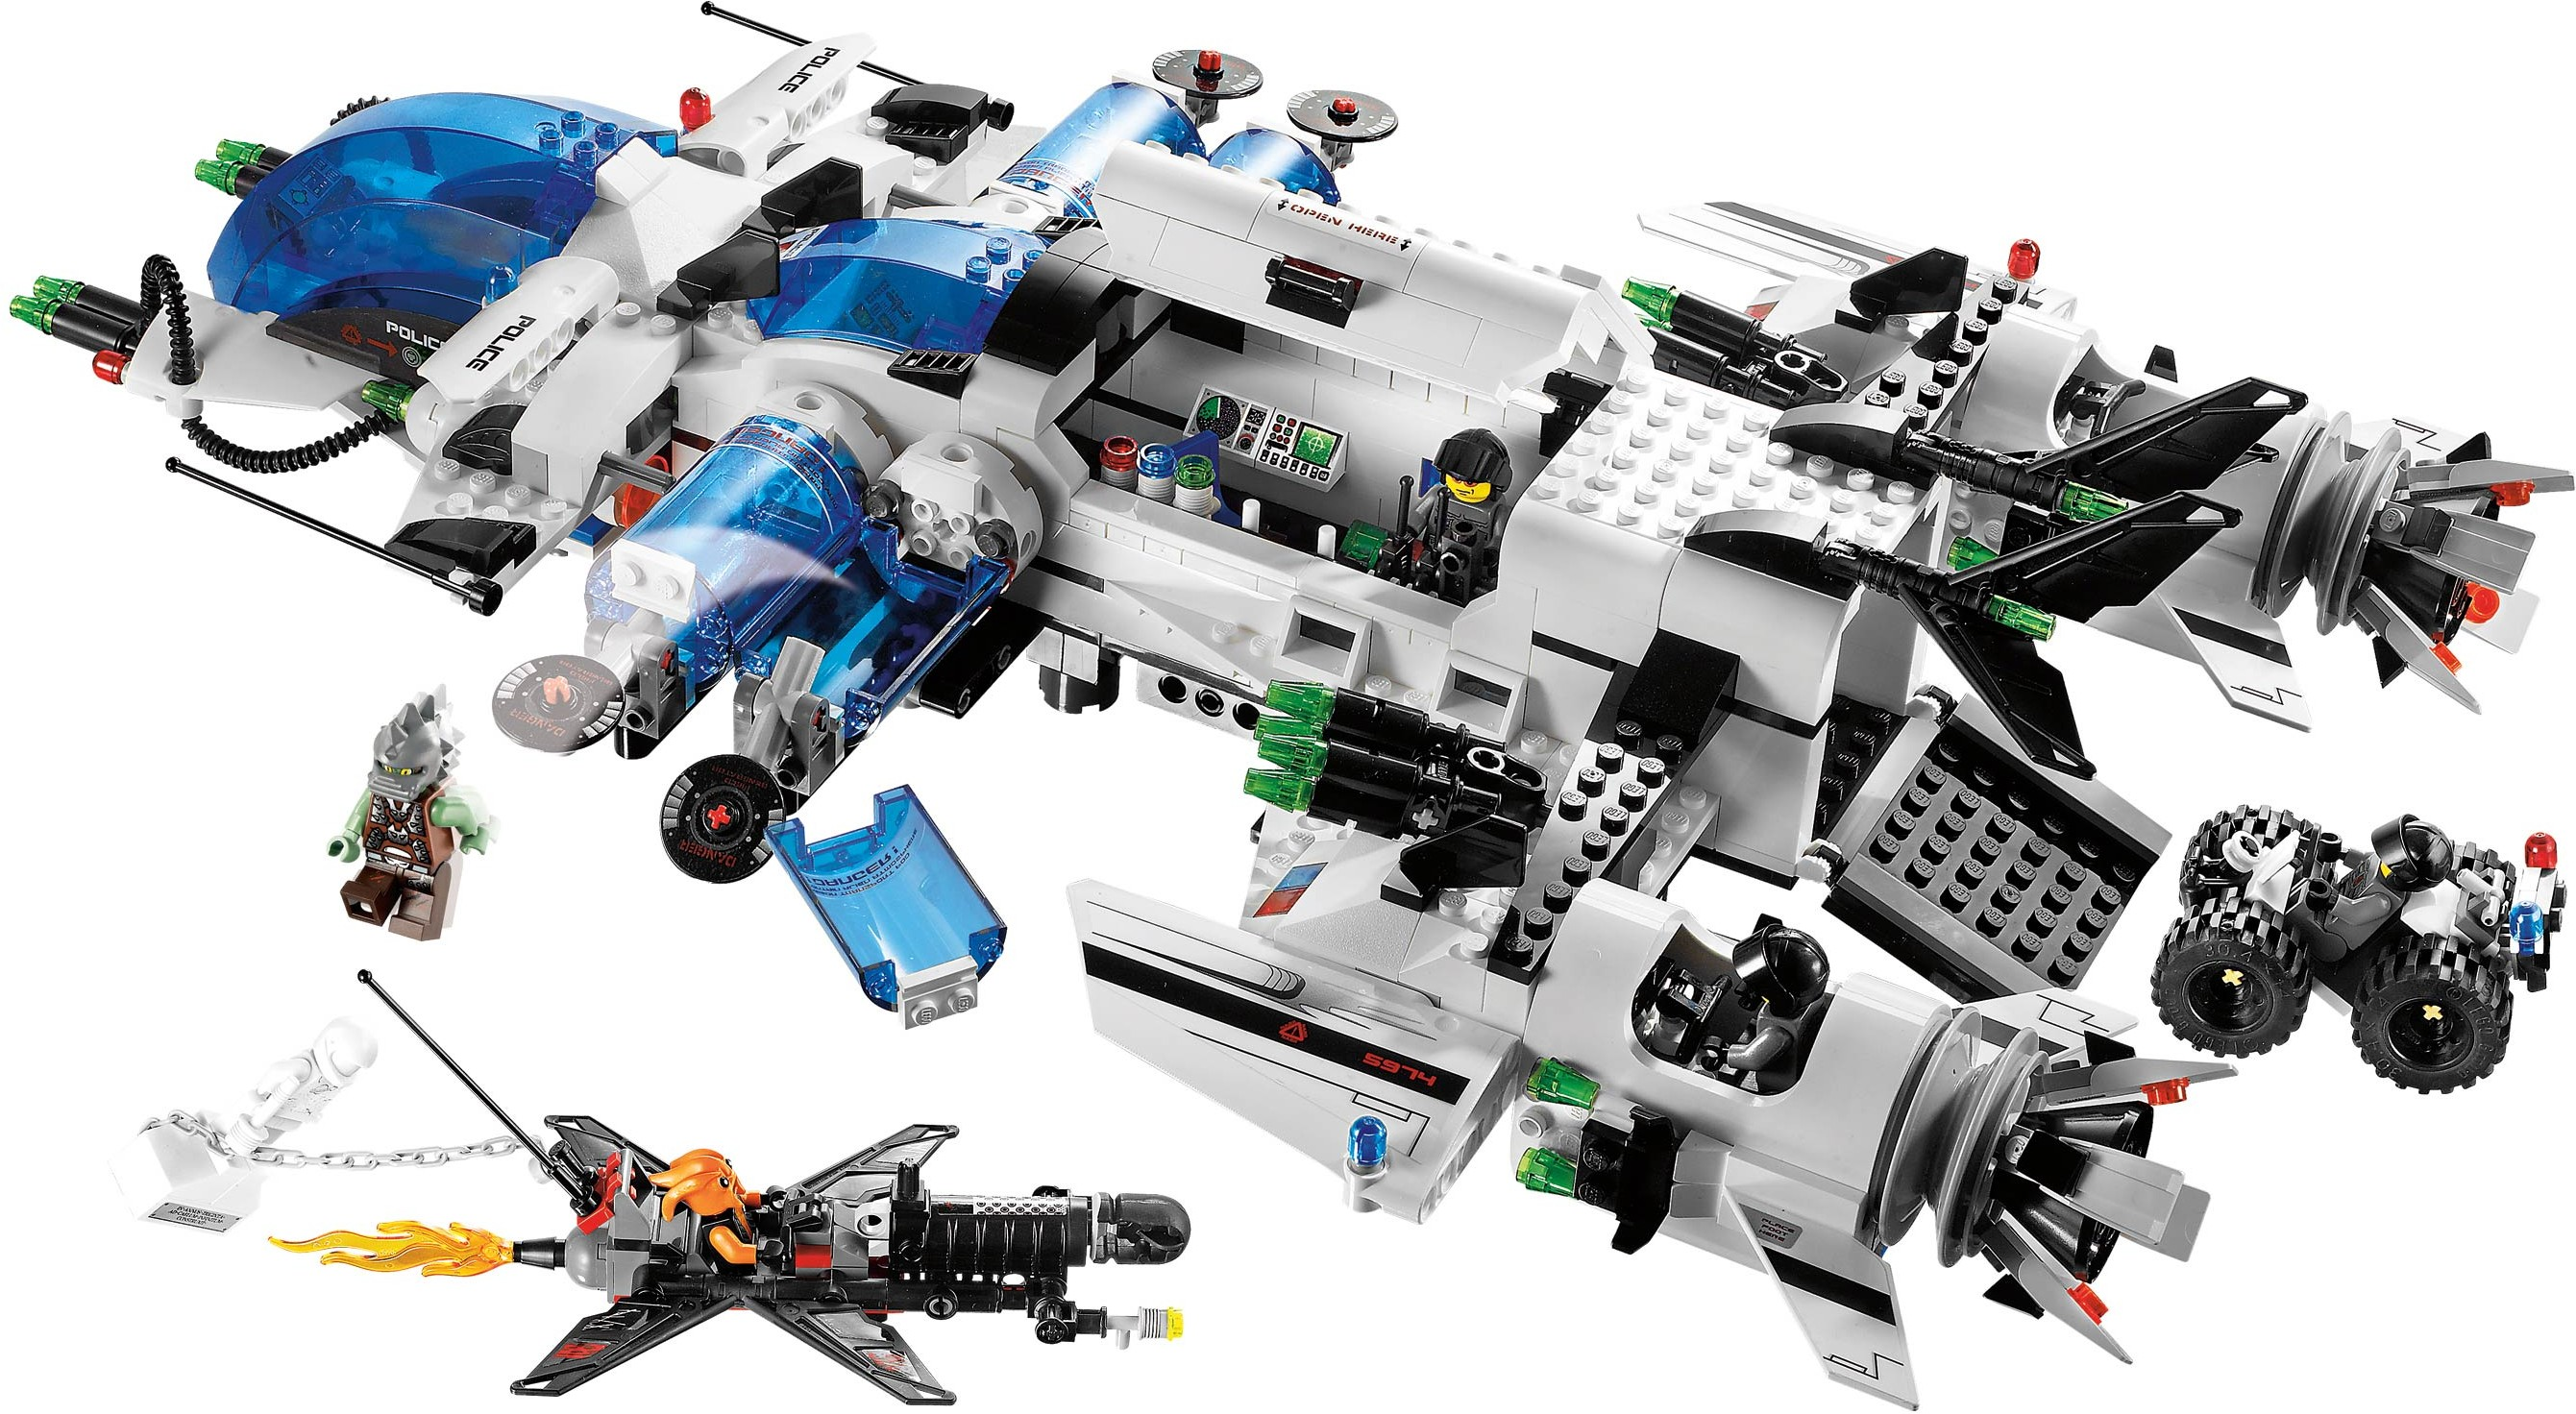 Space  Space Police 3  Brickset LEGO set guide and database